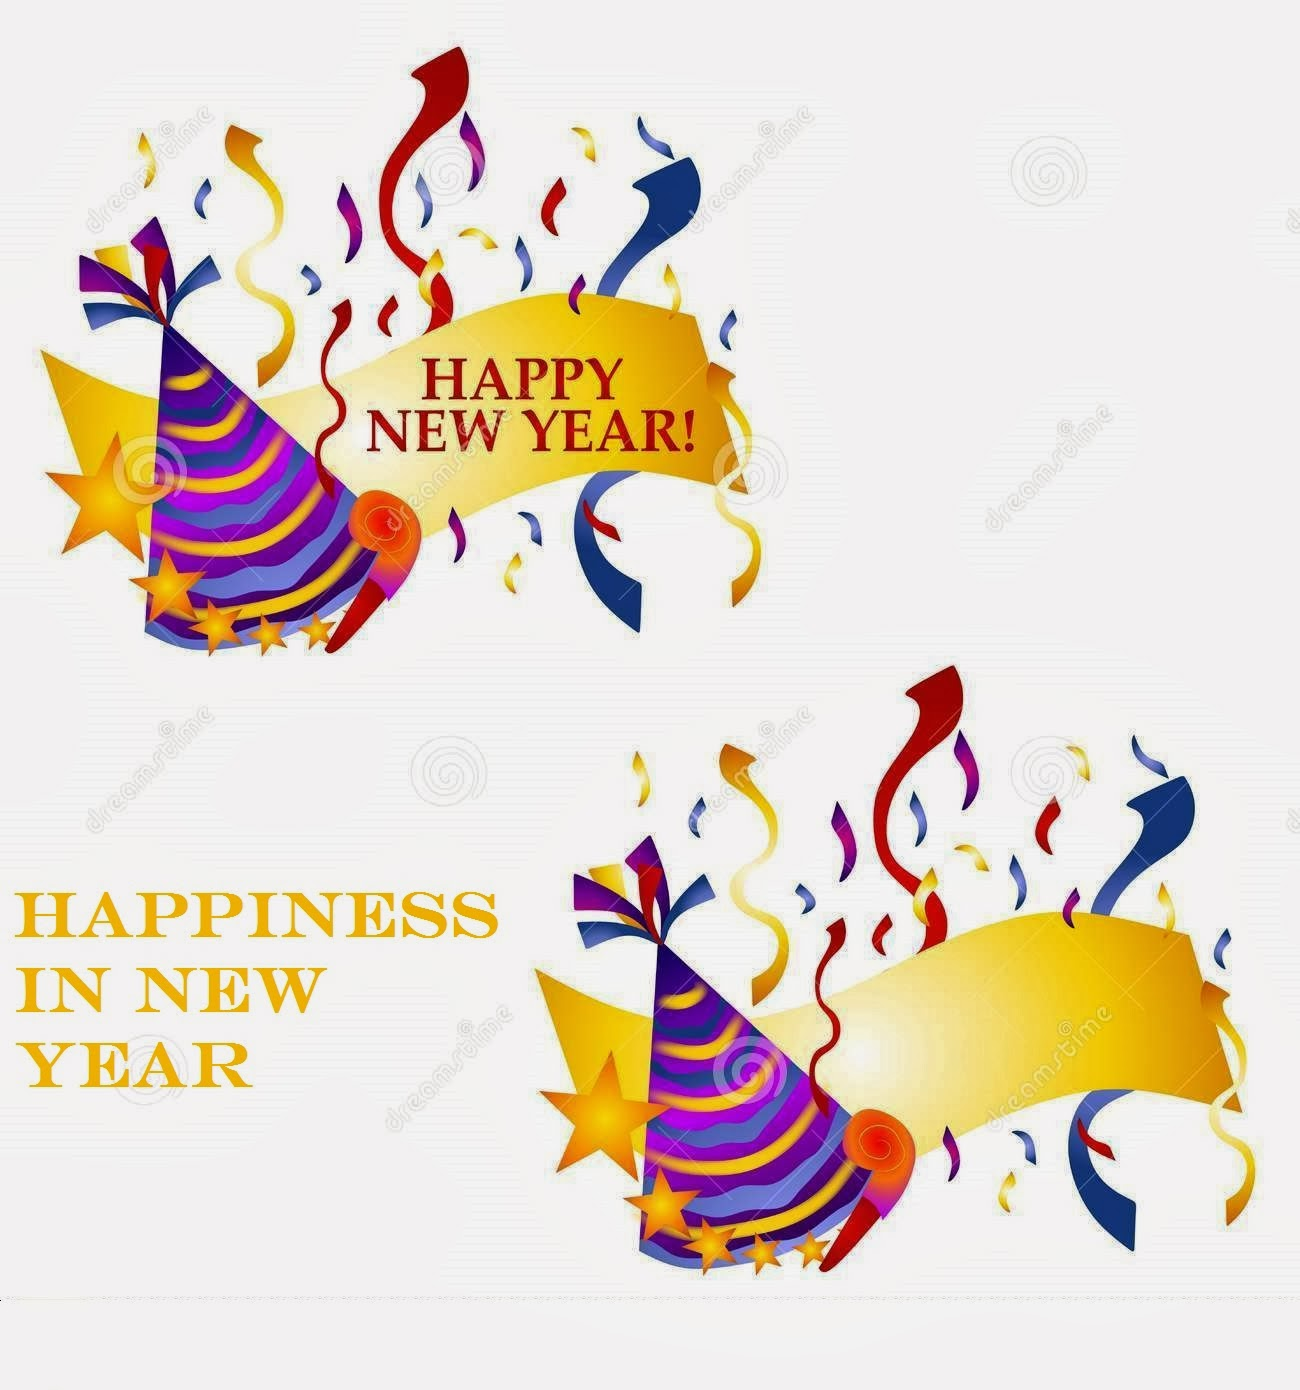 Best Happy New Year Clip Art And Messages 2015 - Free Quotes ...